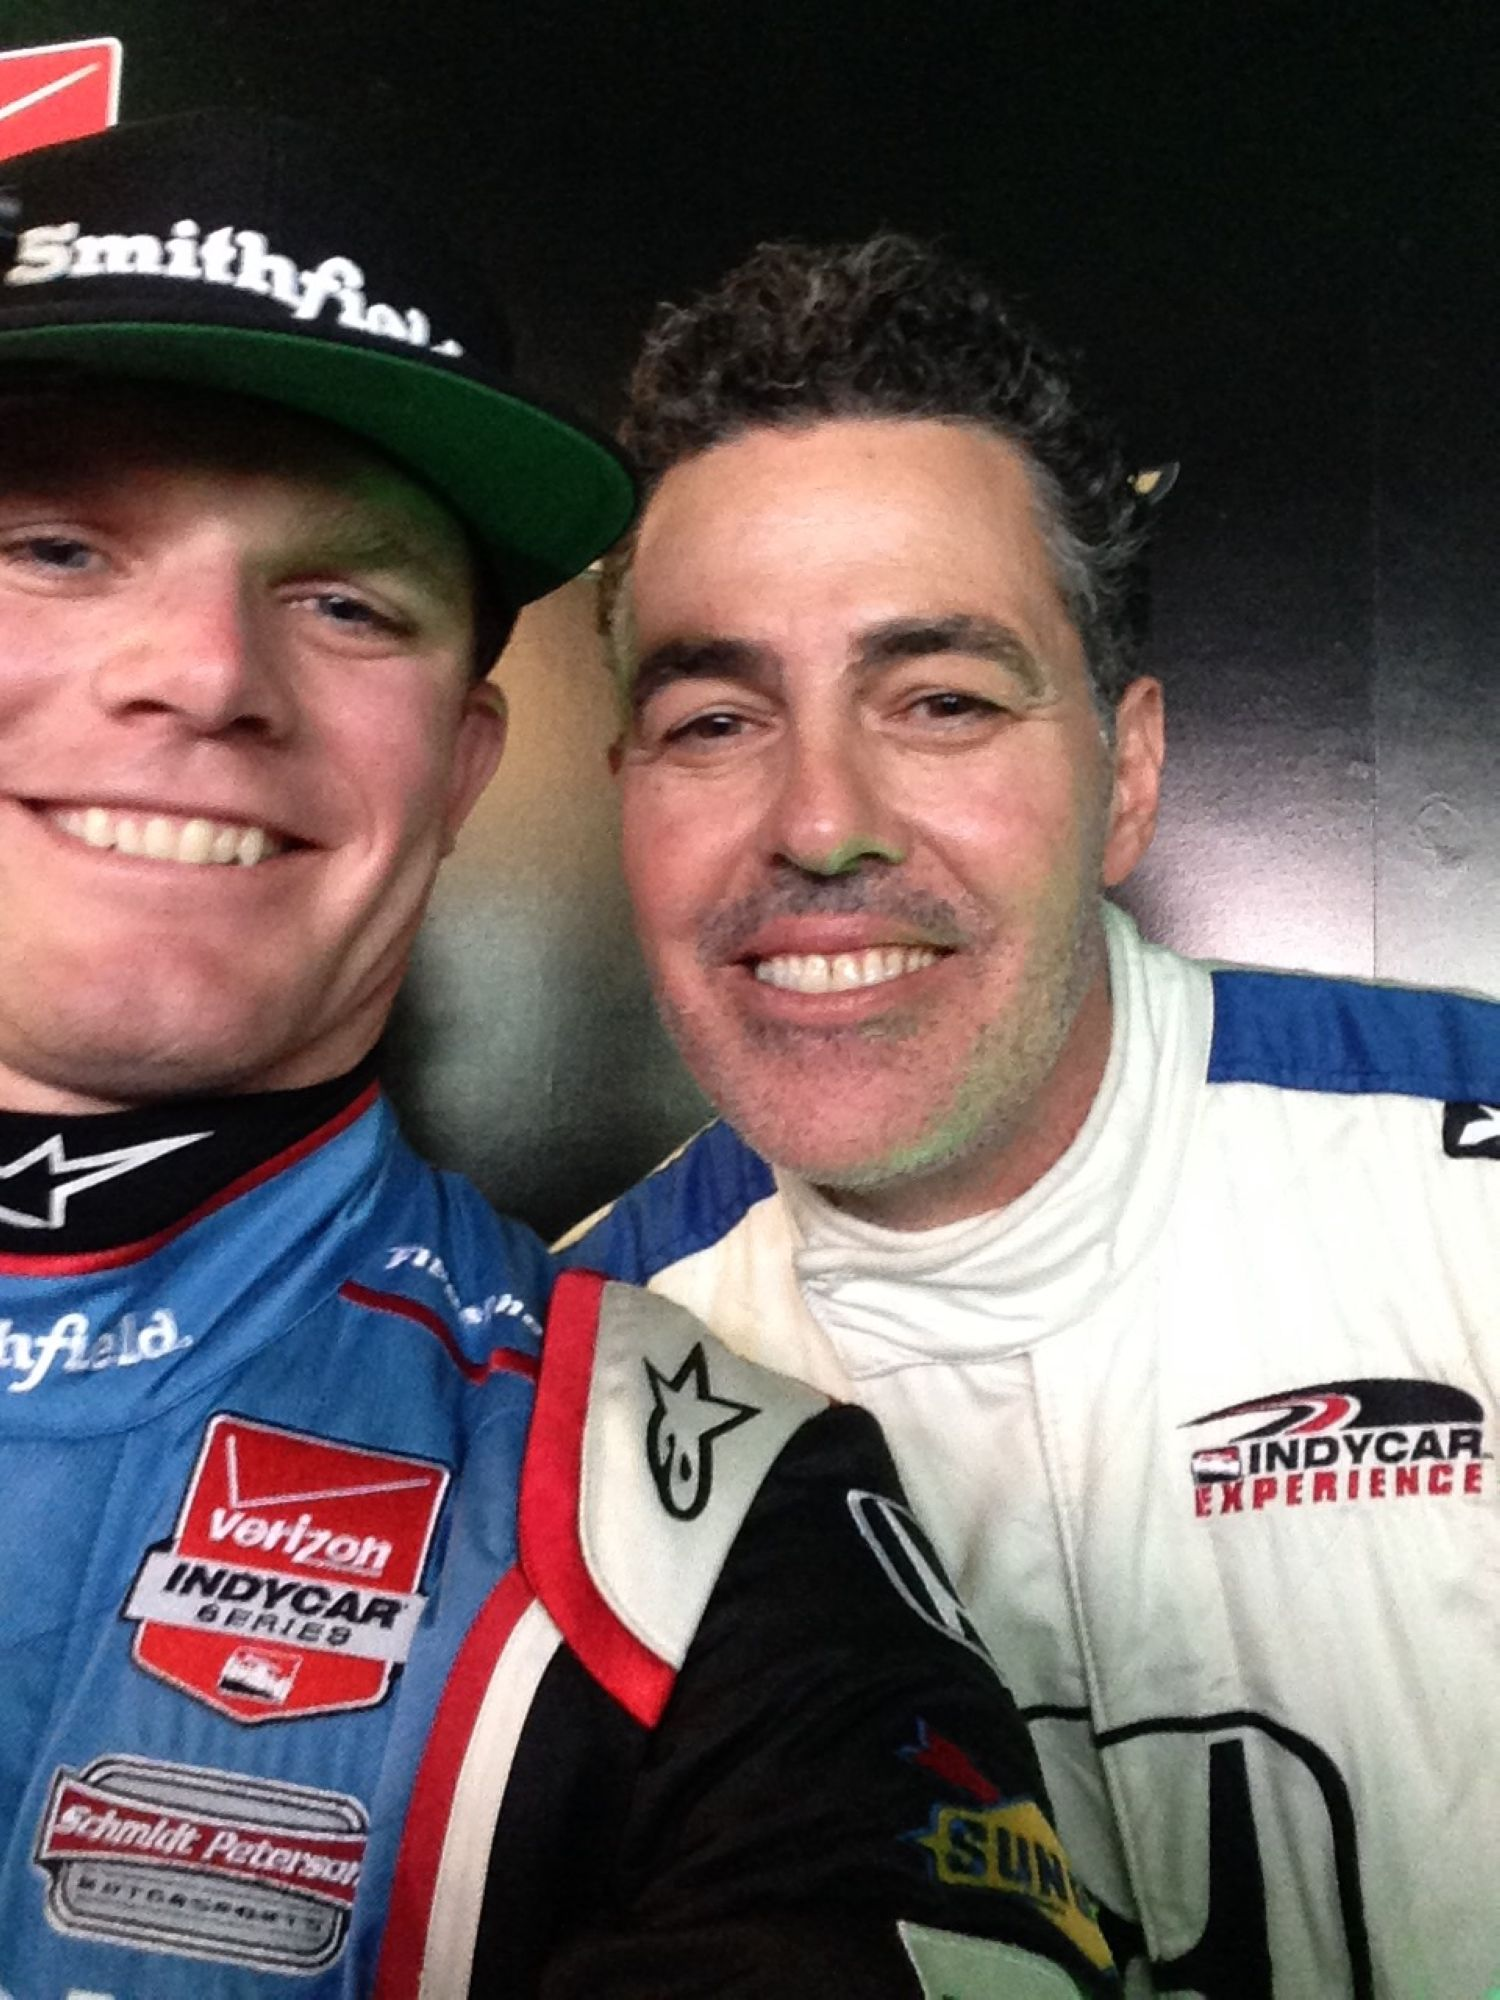 Daly and Carolla